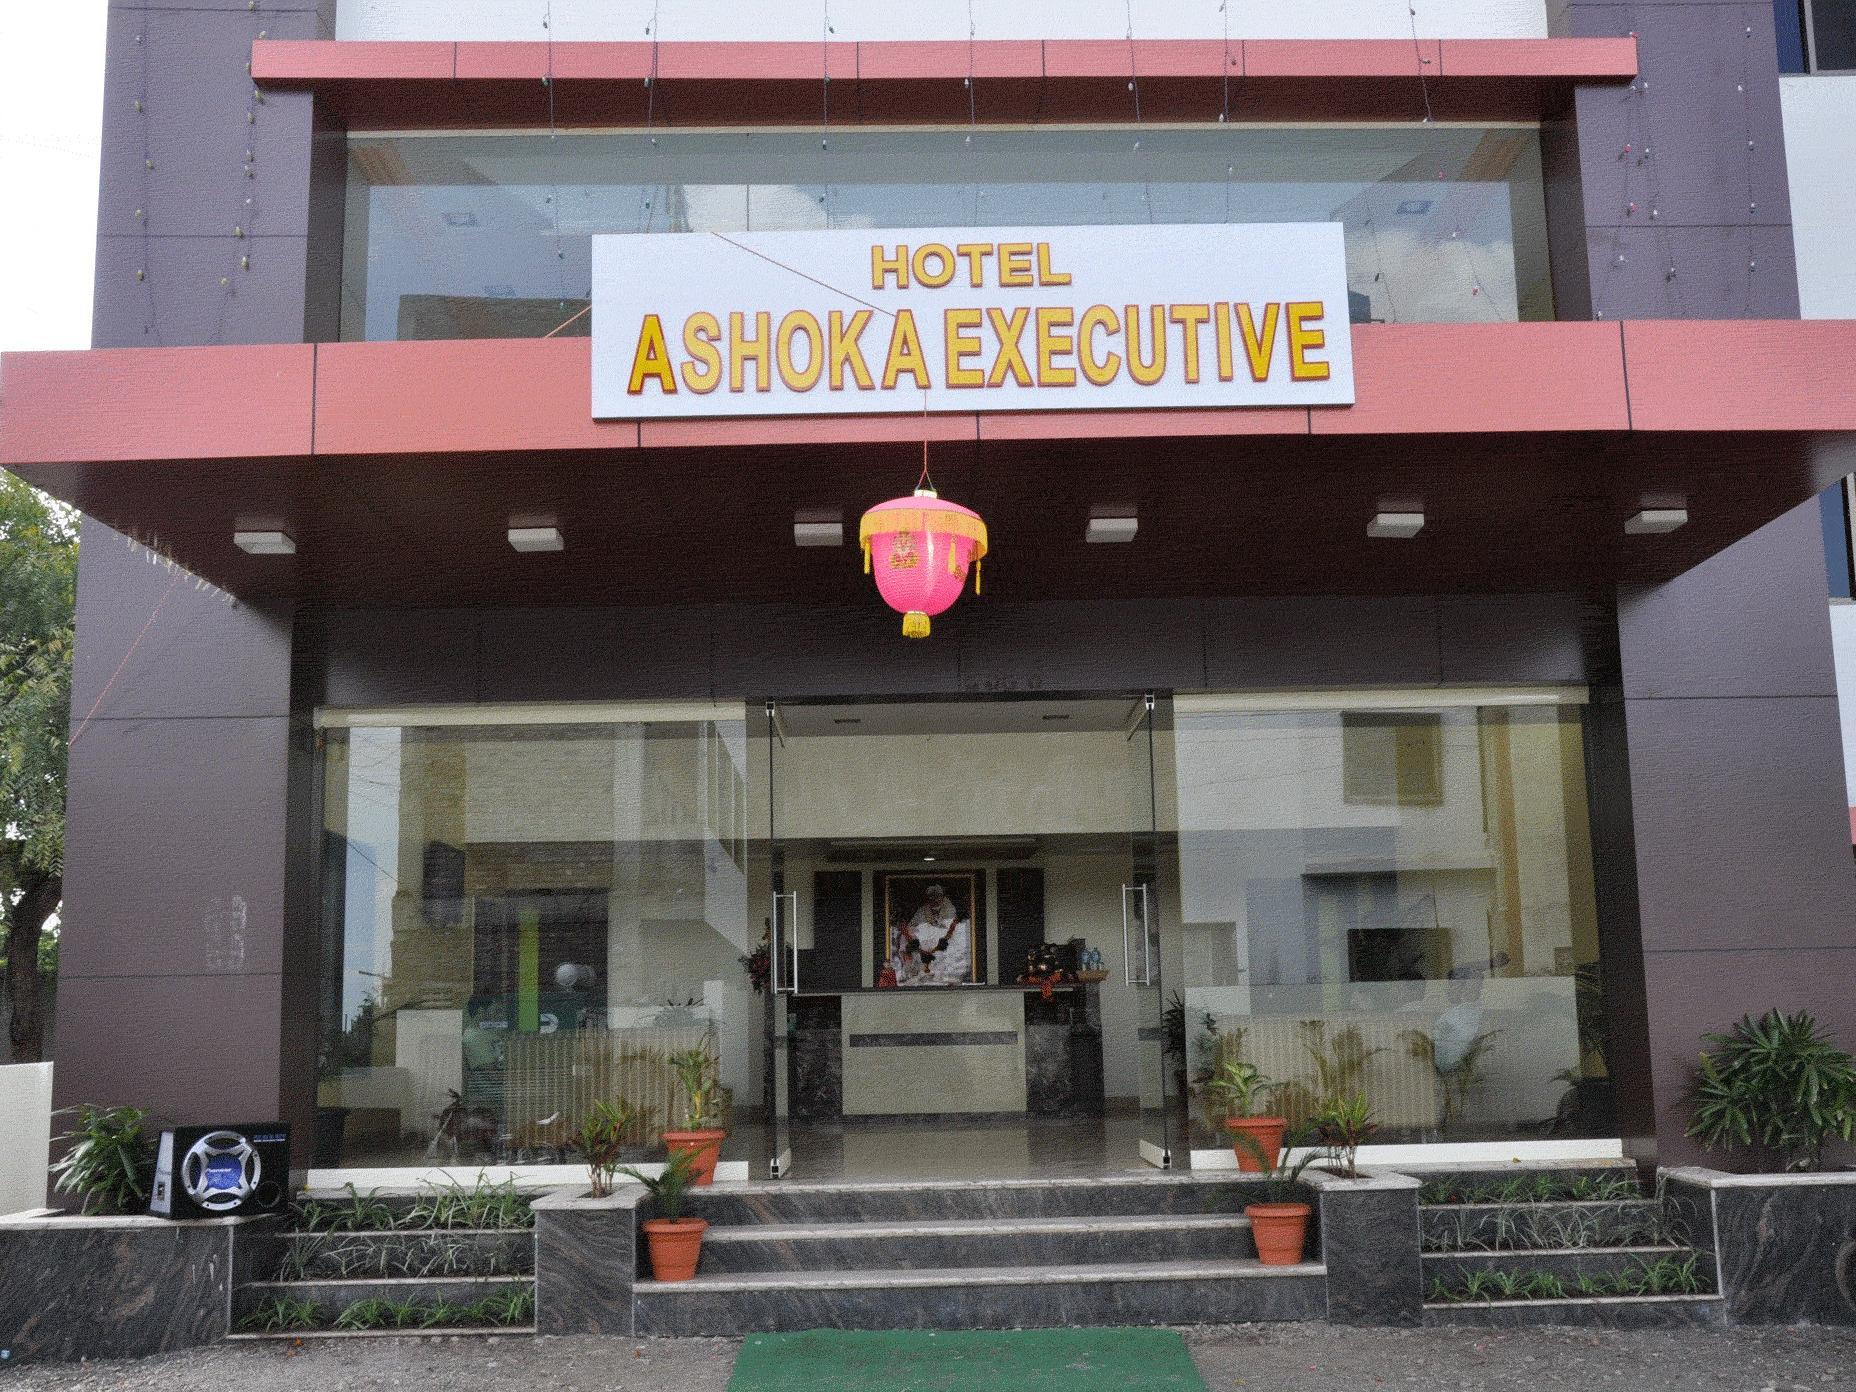 Hotel Ashoka Executive - Shirdi